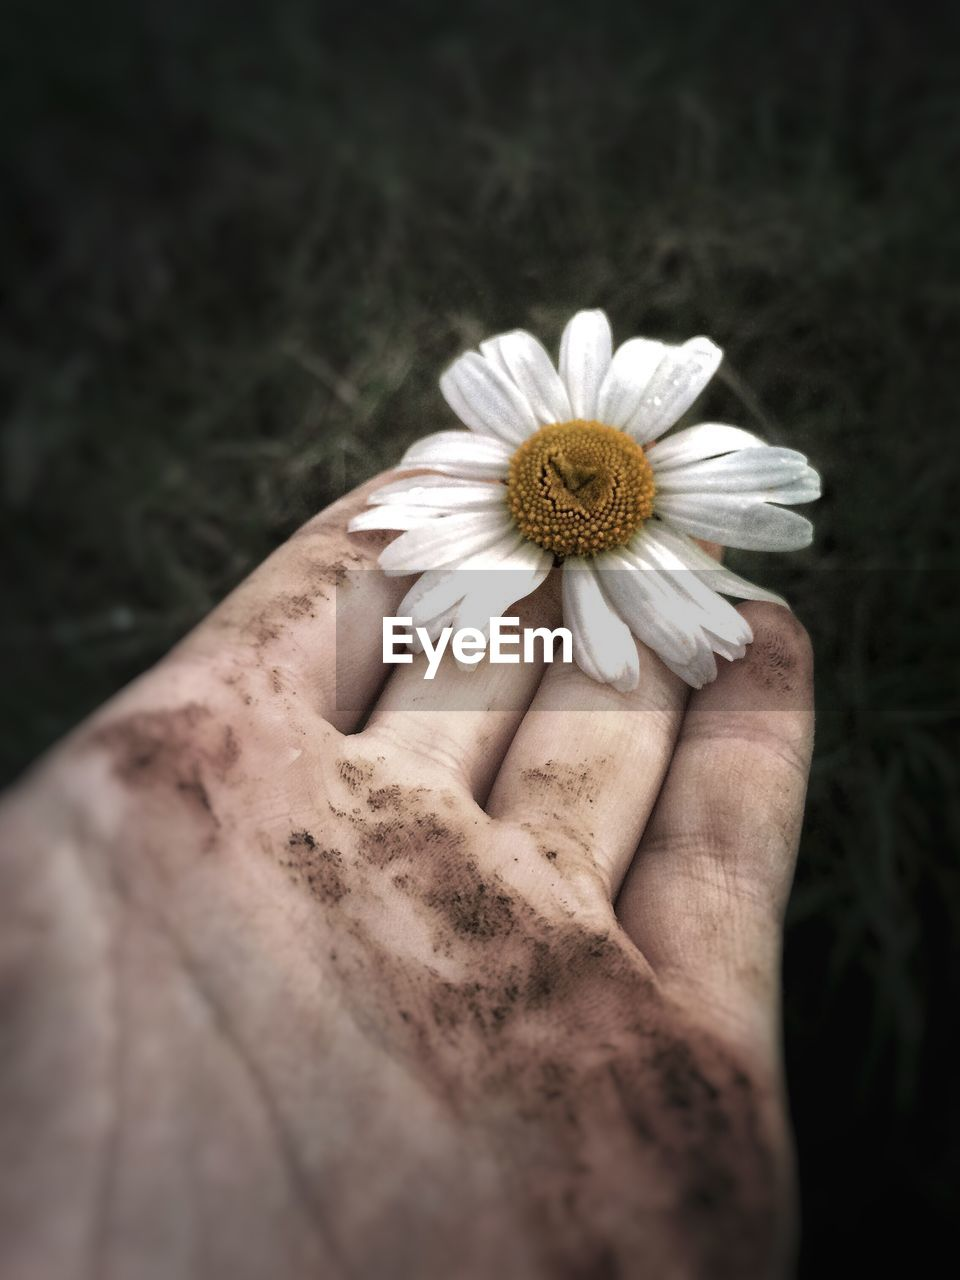 hand, human hand, human body part, flower, flowering plant, one person, plant, freshness, vulnerability, close-up, fragility, holding, real people, body part, unrecognizable person, lifestyles, beauty in nature, inflorescence, petal, pollen, flower head, finger, human limb